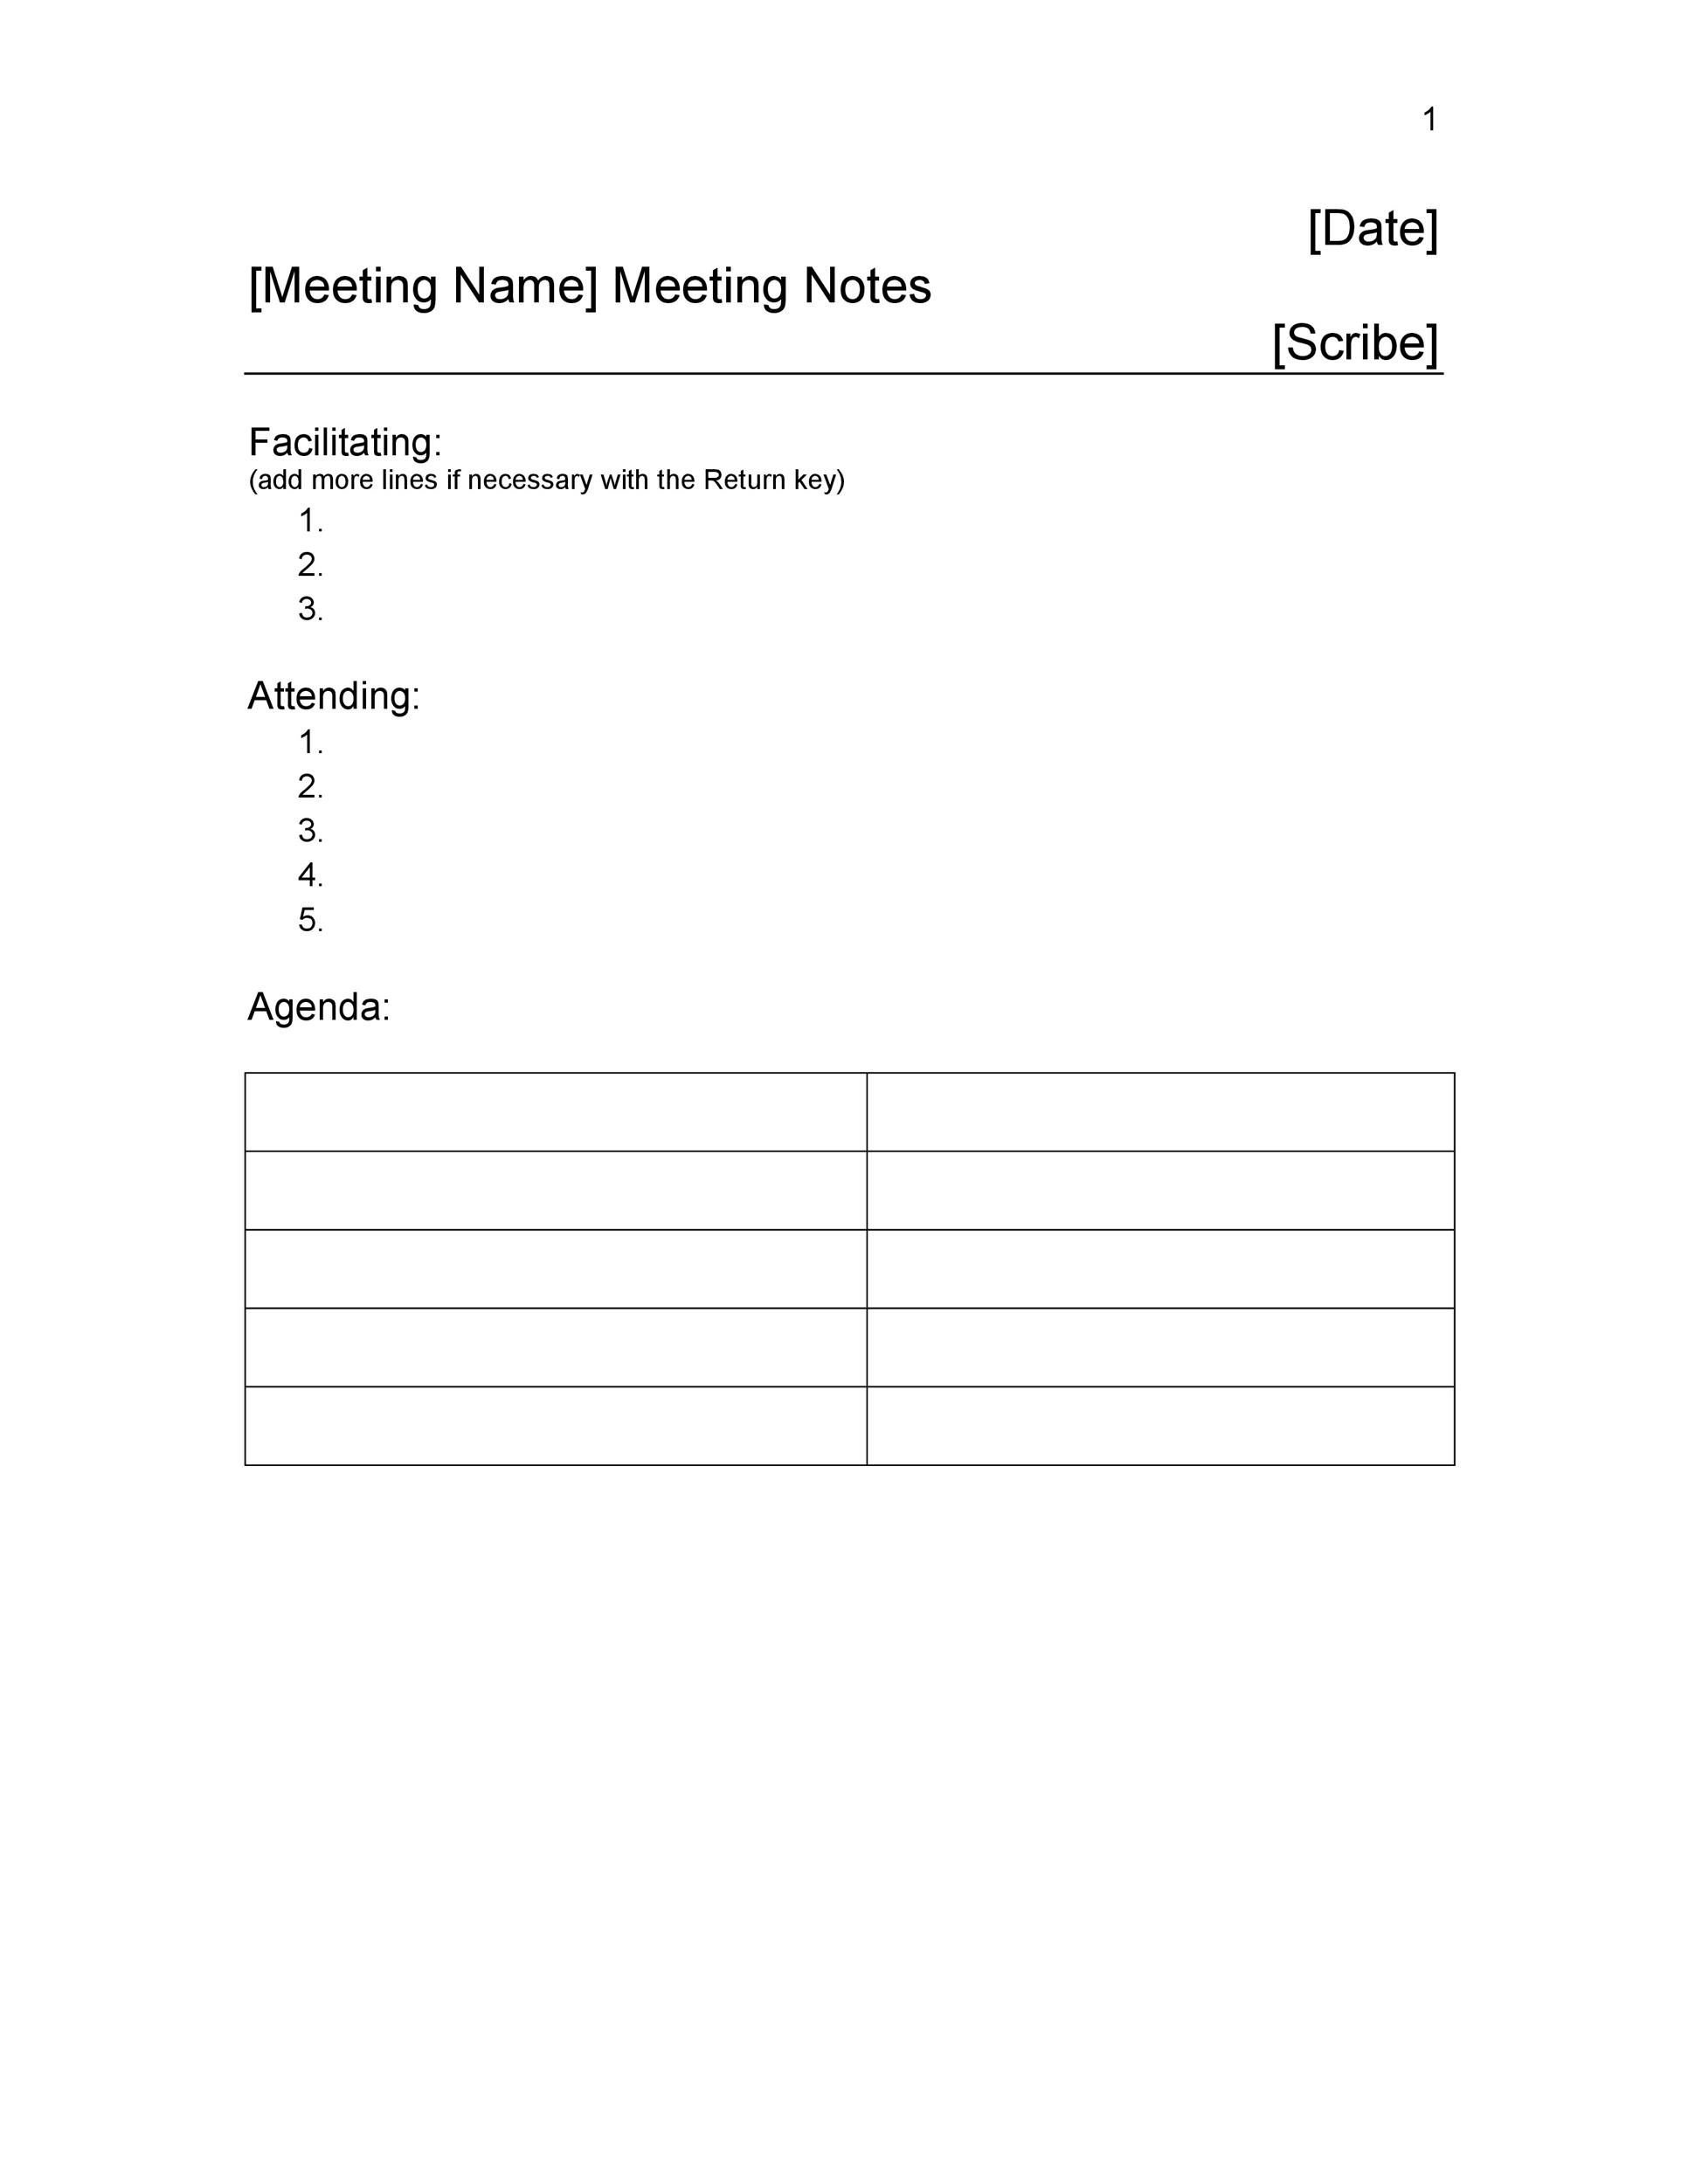 Handy Meeting Minutes & Meeting Notes Templates